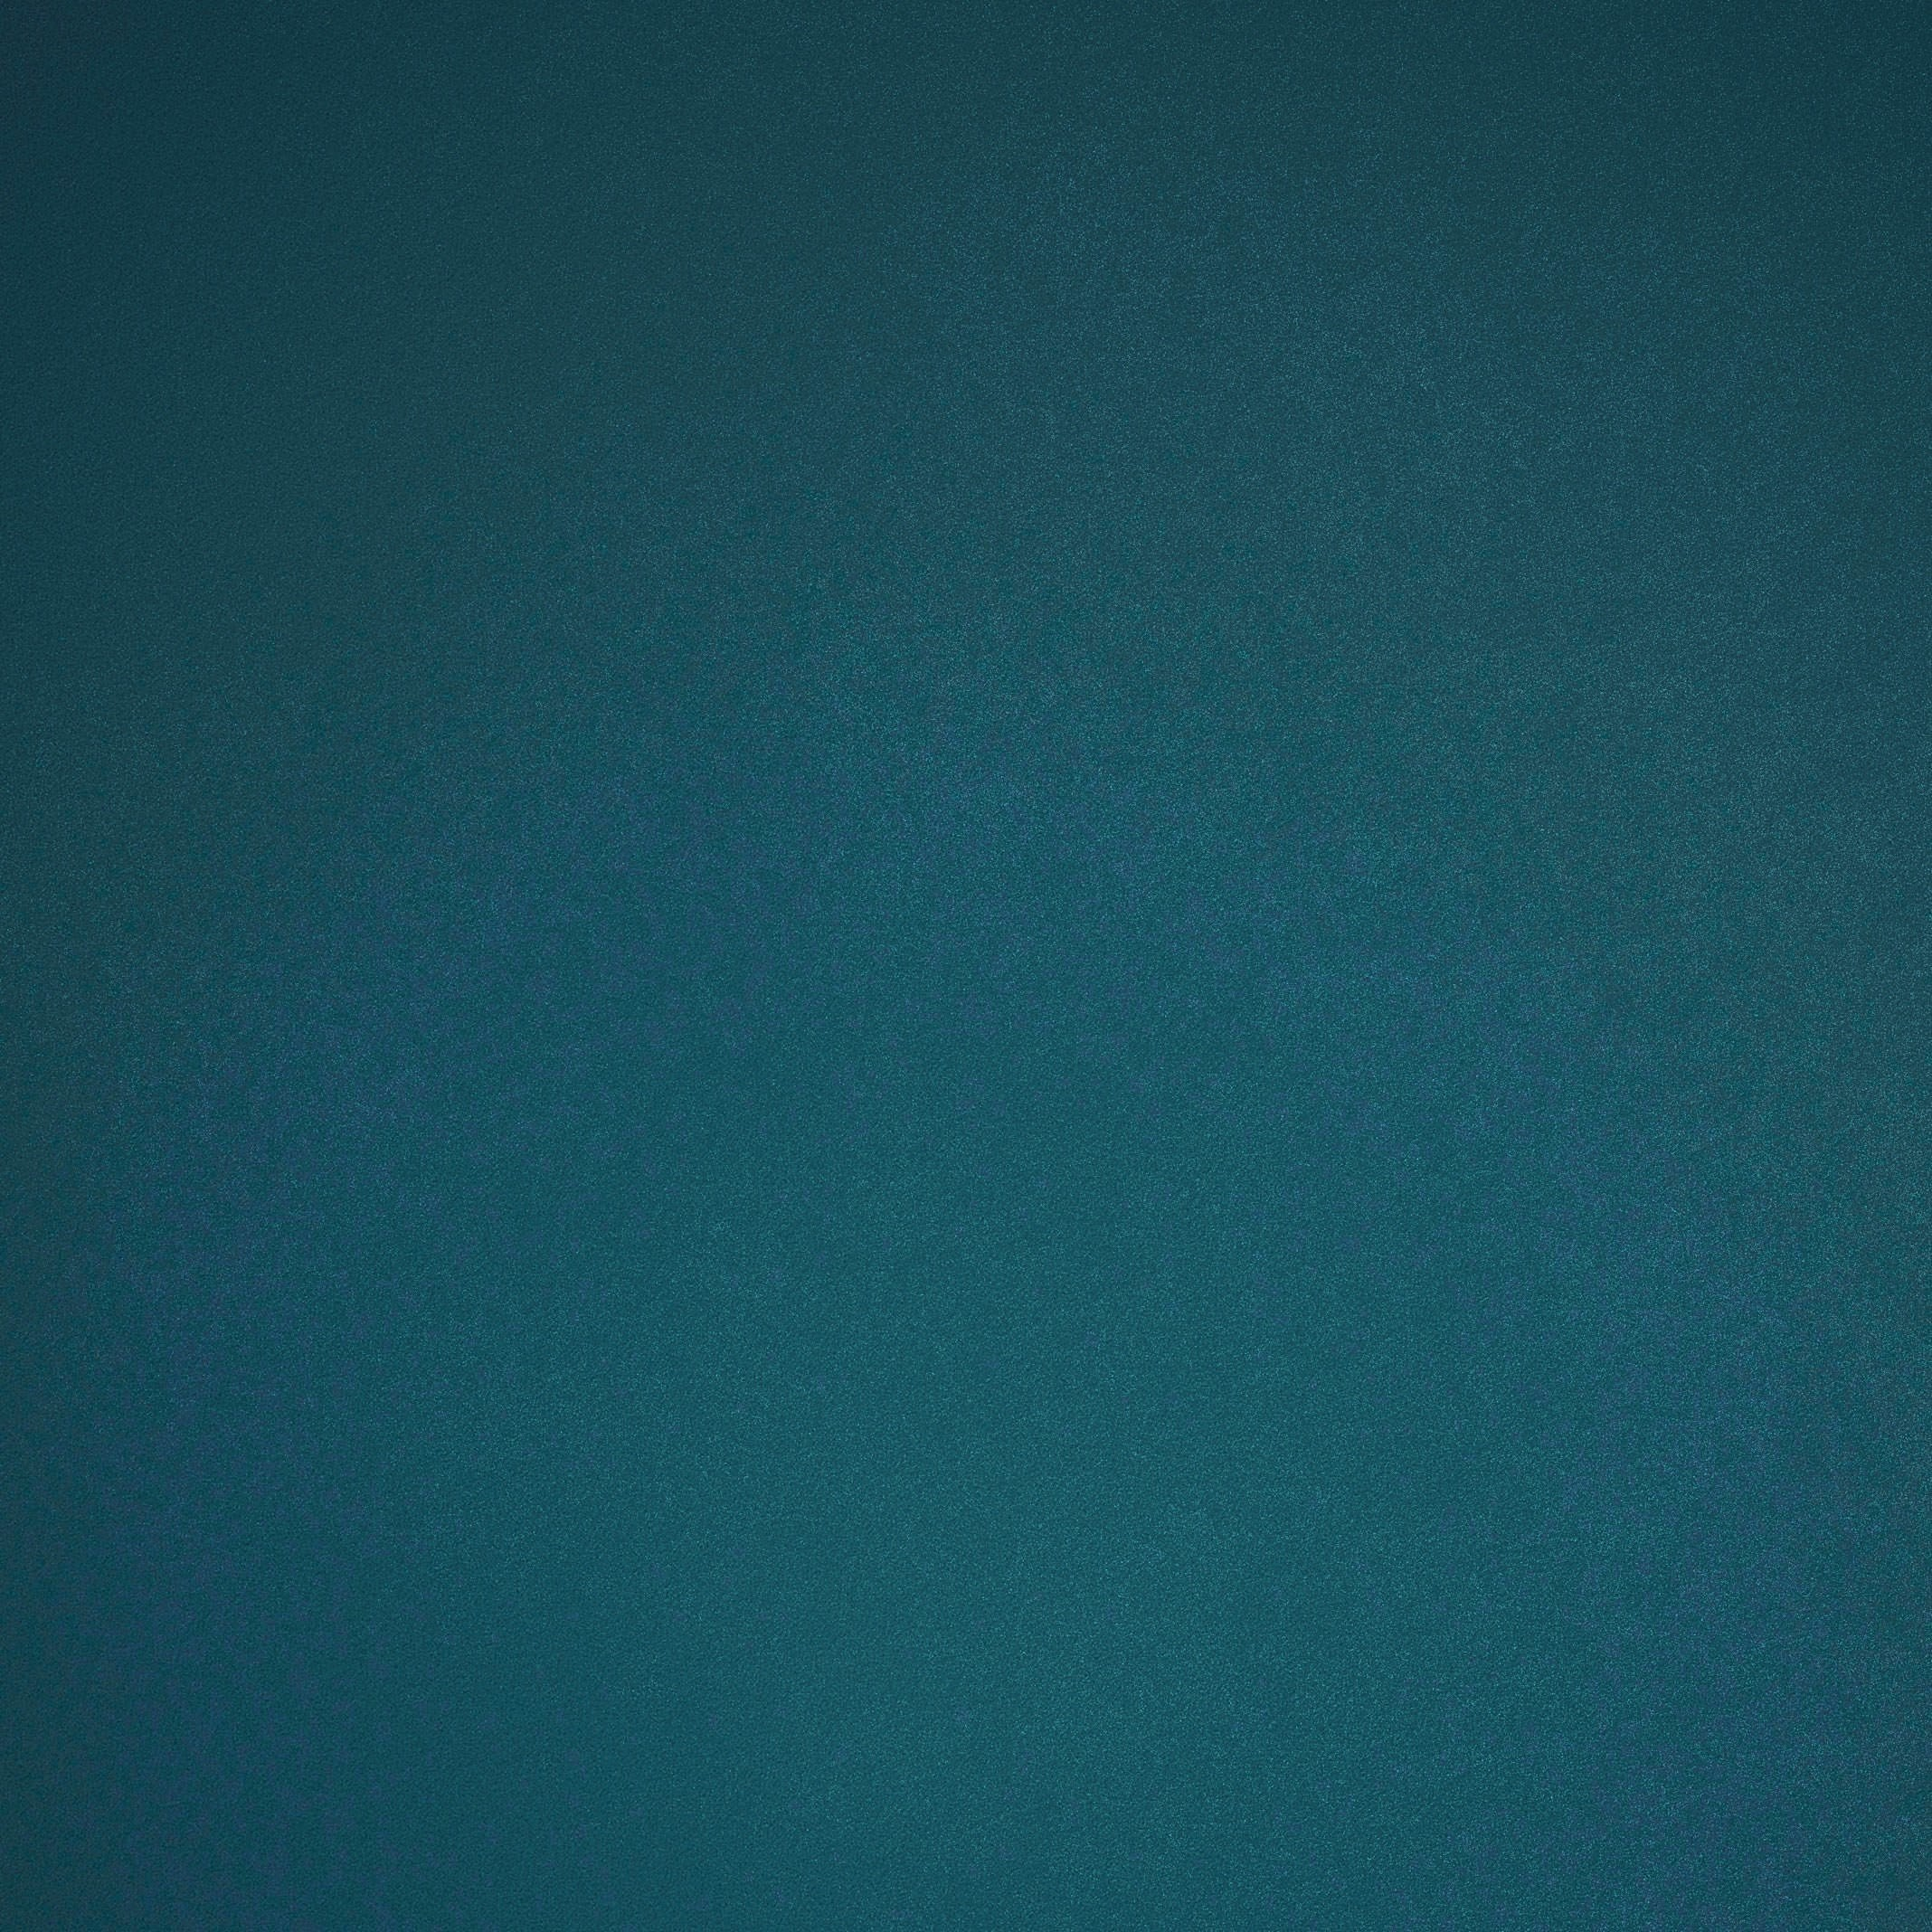 Blue Gray Wallpaper 57 Images